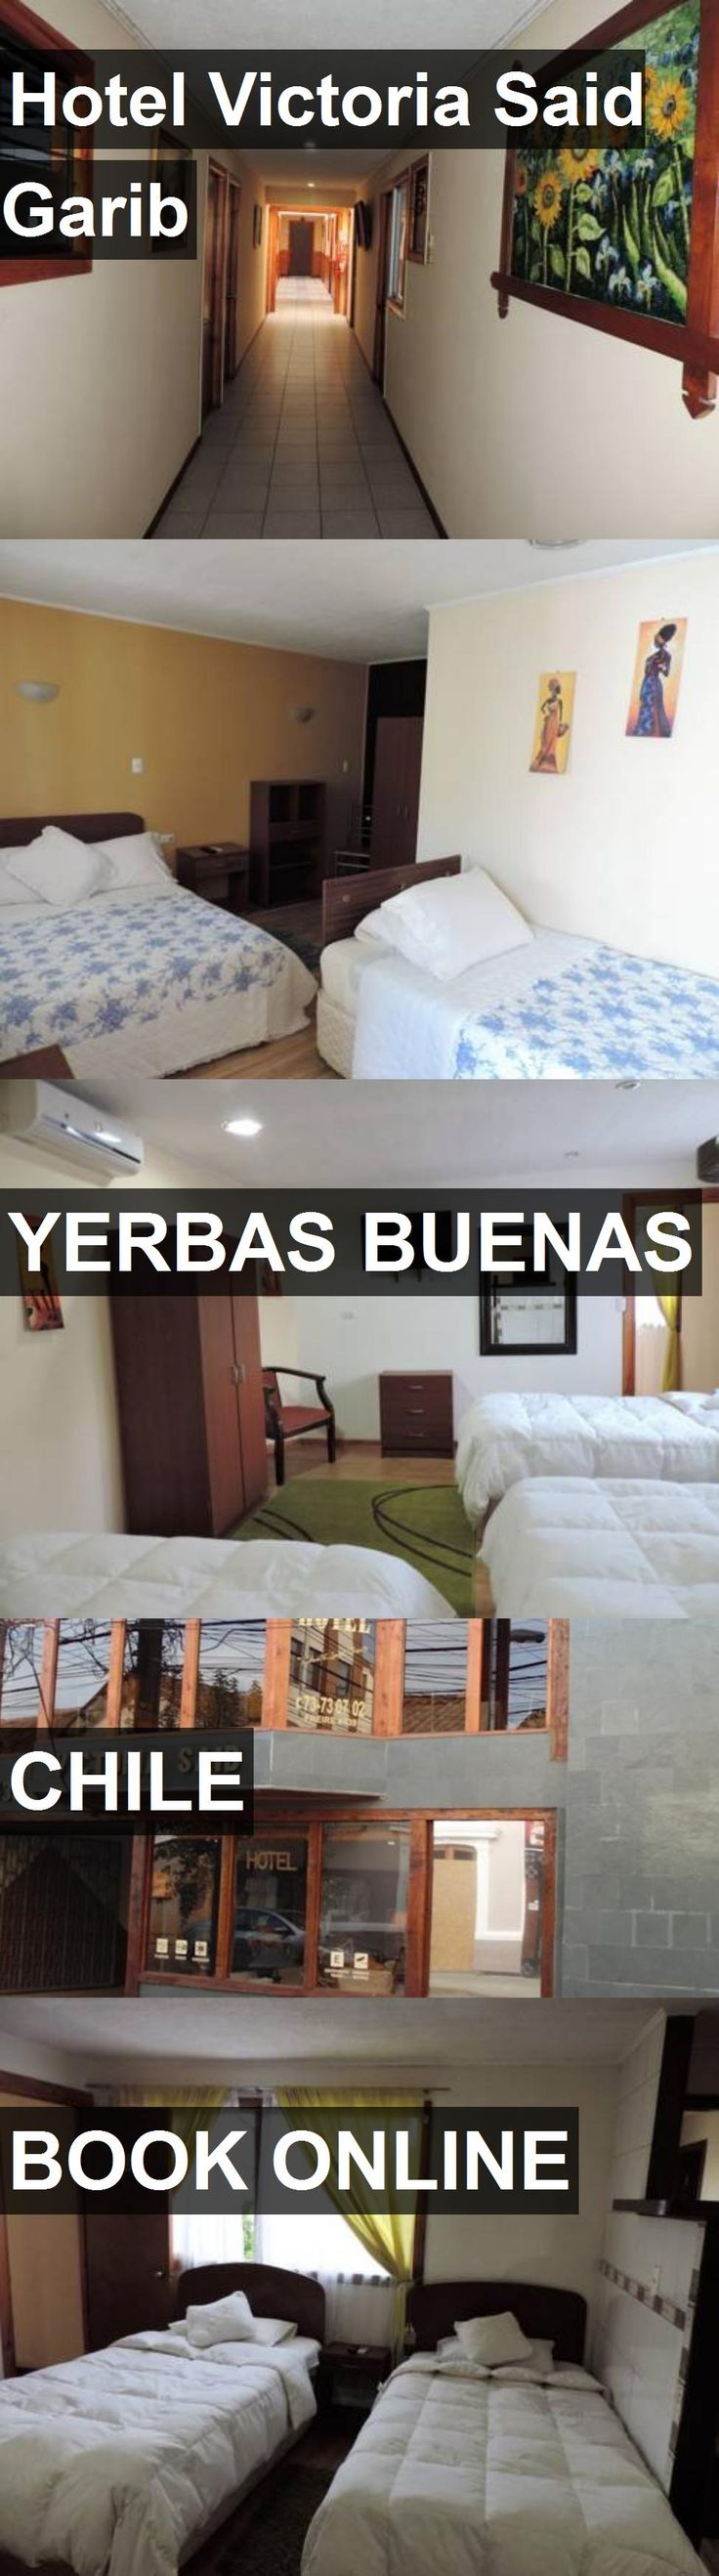 Hotel Victoria Said Garib in Yerbas Buenas, Chile. For more information, photos, reviews and best prices please follow the link. #Chile #YerbasBuenas #travel #vacation #hotel